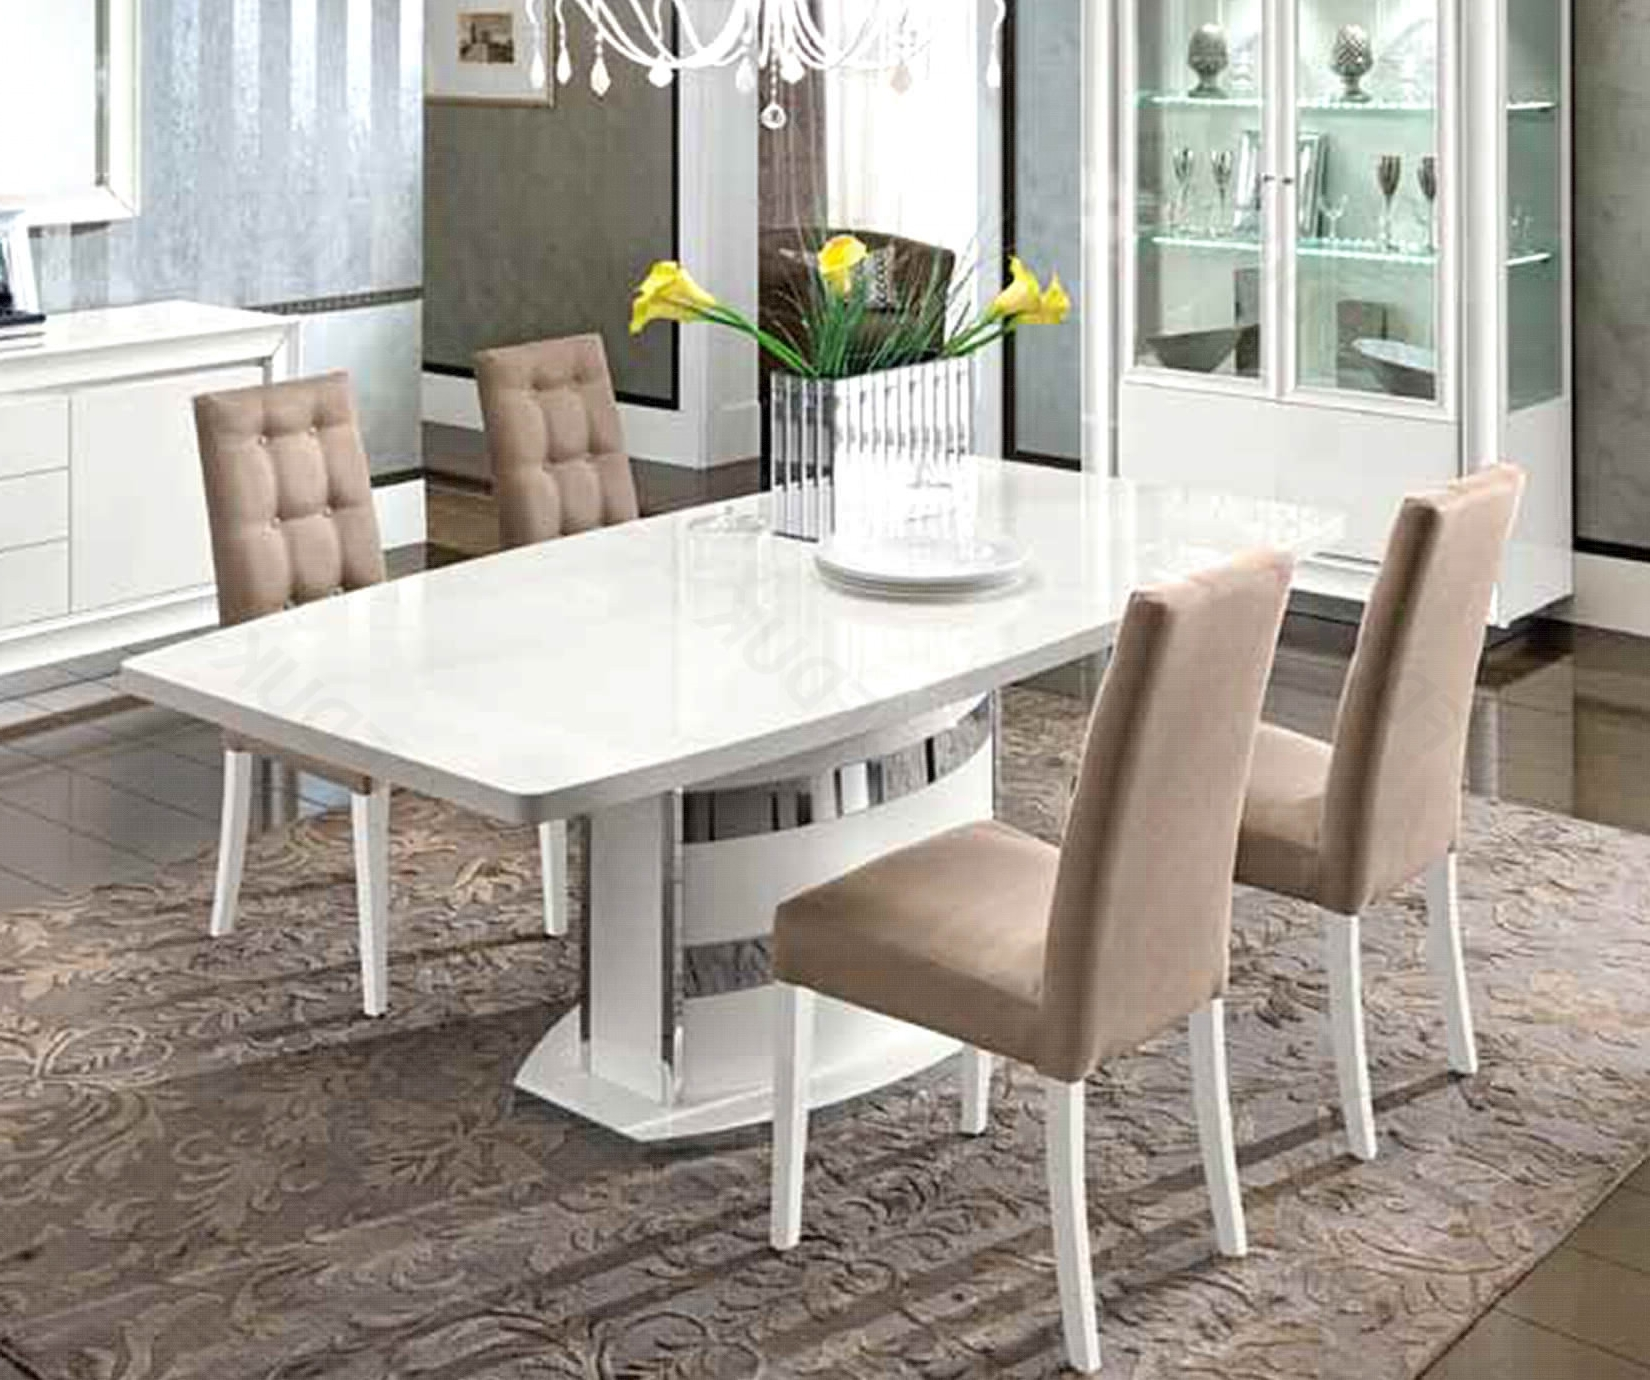 Dama Bianca White High Gloss Extending With Well Known White High Gloss Dining Tables And Chairs (View 9 of 25)